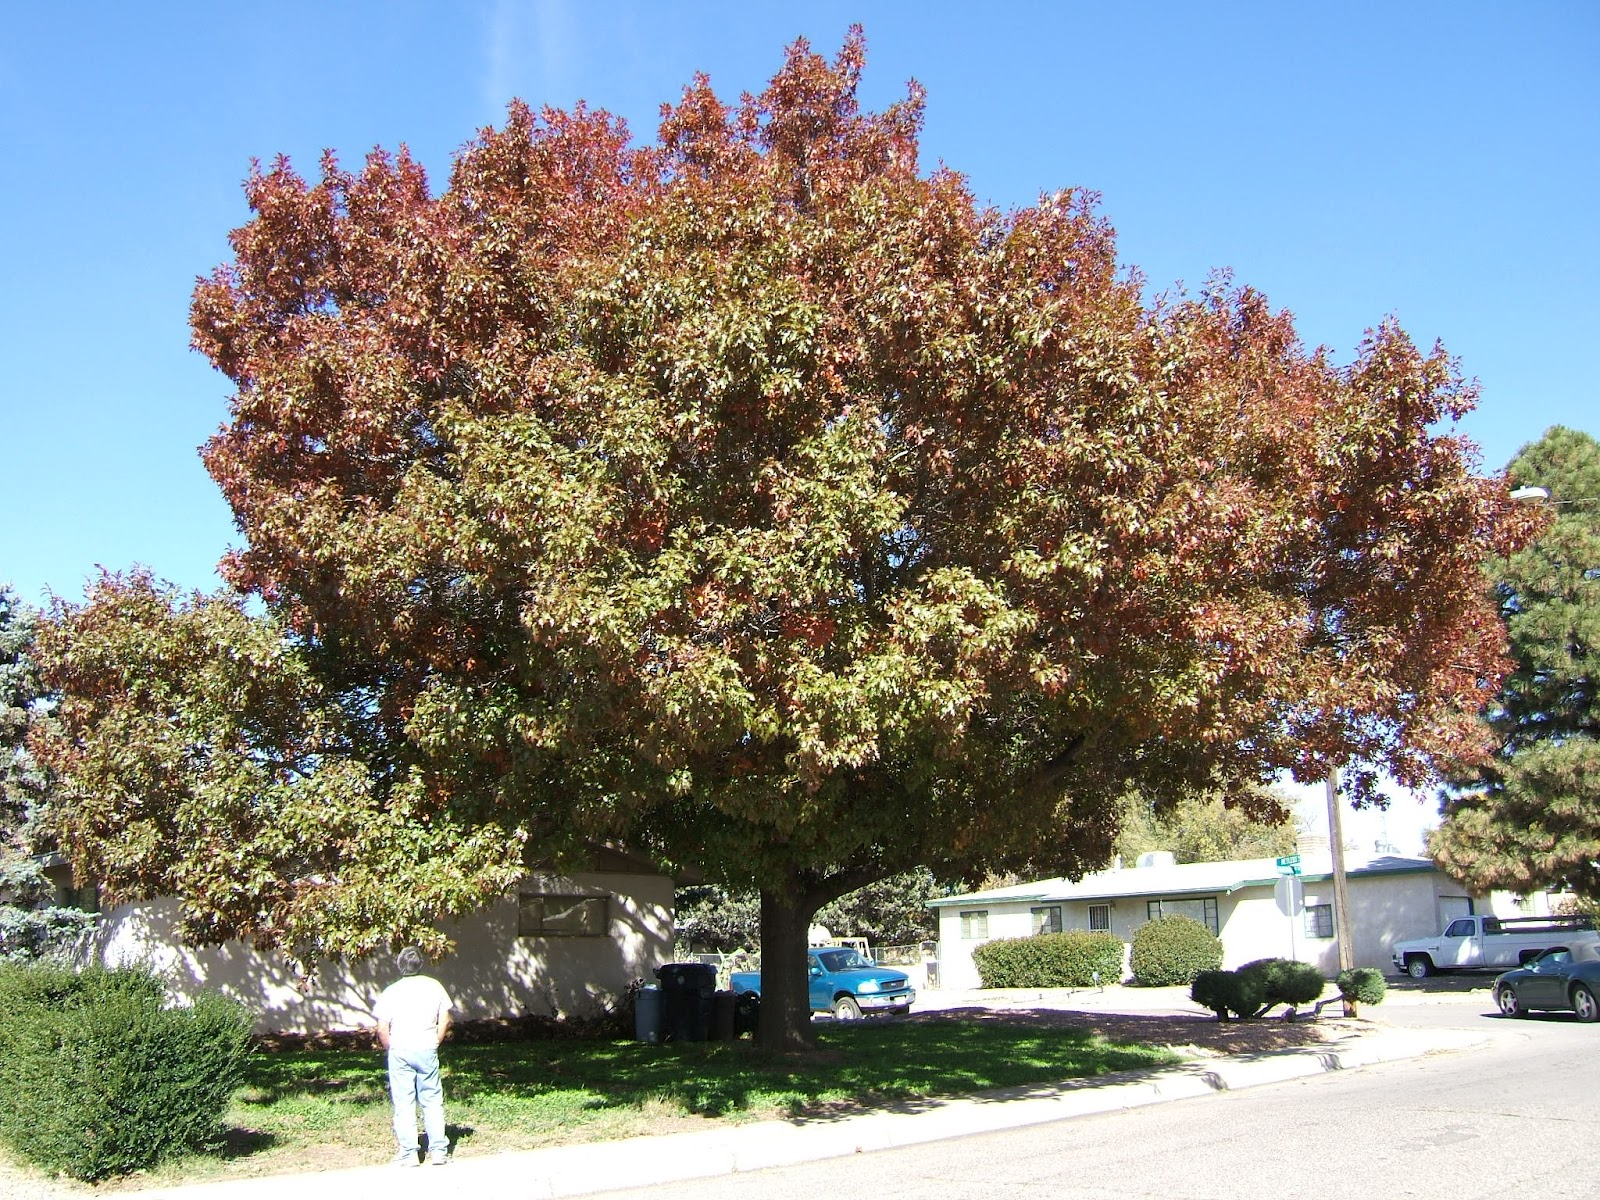 Canopy 35u0027 u2013 40u0027 tall 20u0027 u2013 25u0027 wide makes acorns Chisos Red Oak slightly smaller. Tap root. Fall Color- Gorgeous Red- Maroon & Trees That Please Nursery: Shade Trees for Small Spaces